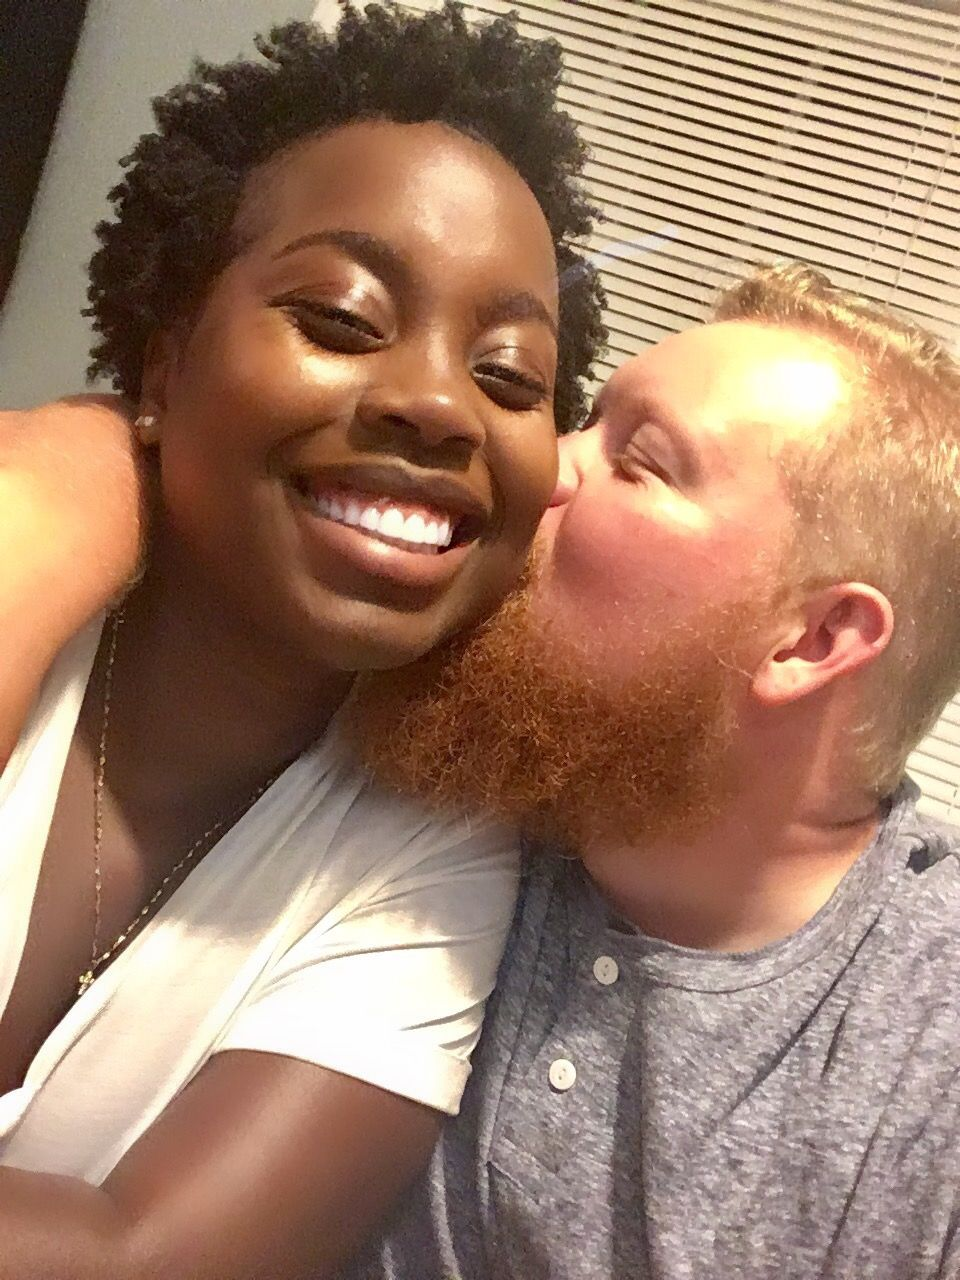 interracial dating site bwwm